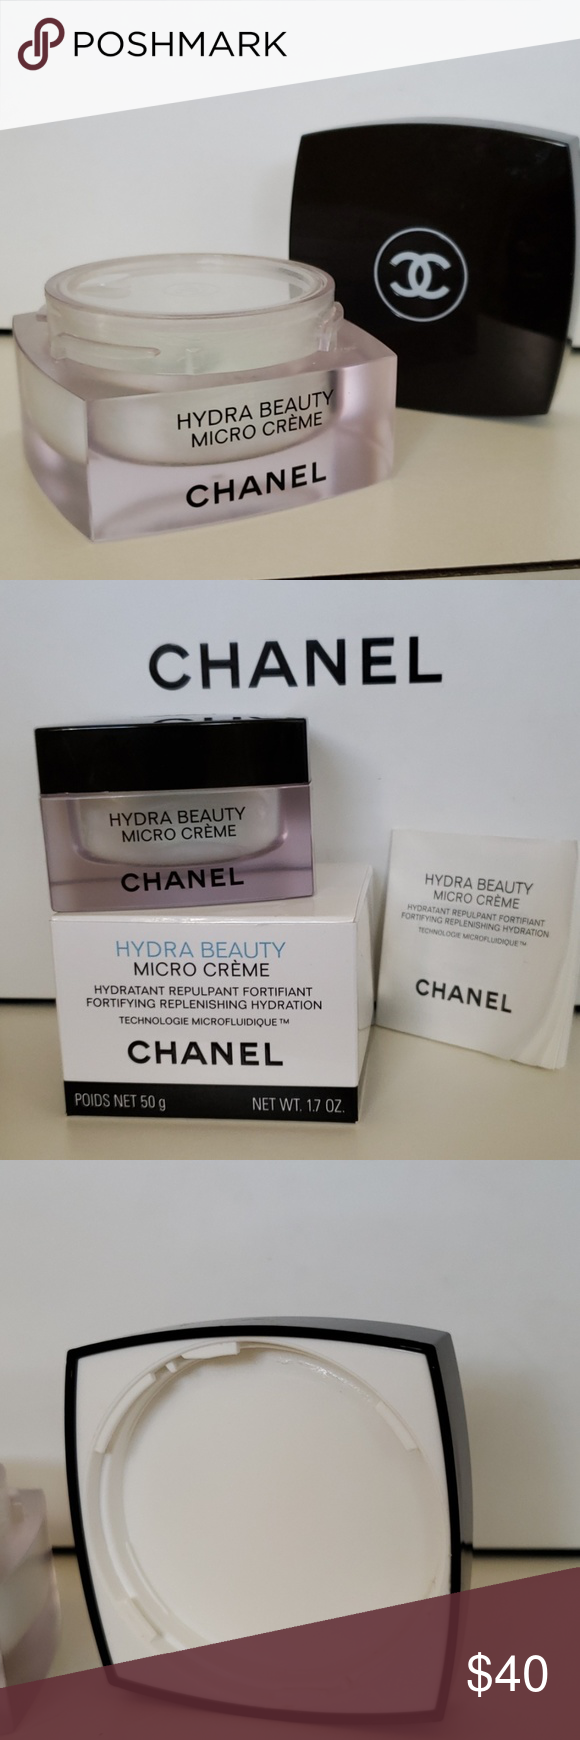 C H A N E L Hydra Beauty Micro Creme Empty This Is An Authentic Chanel Glass Jar Not Plastic That Has Been Properly Sto Chanel Hydra Beauty Creme Beauty